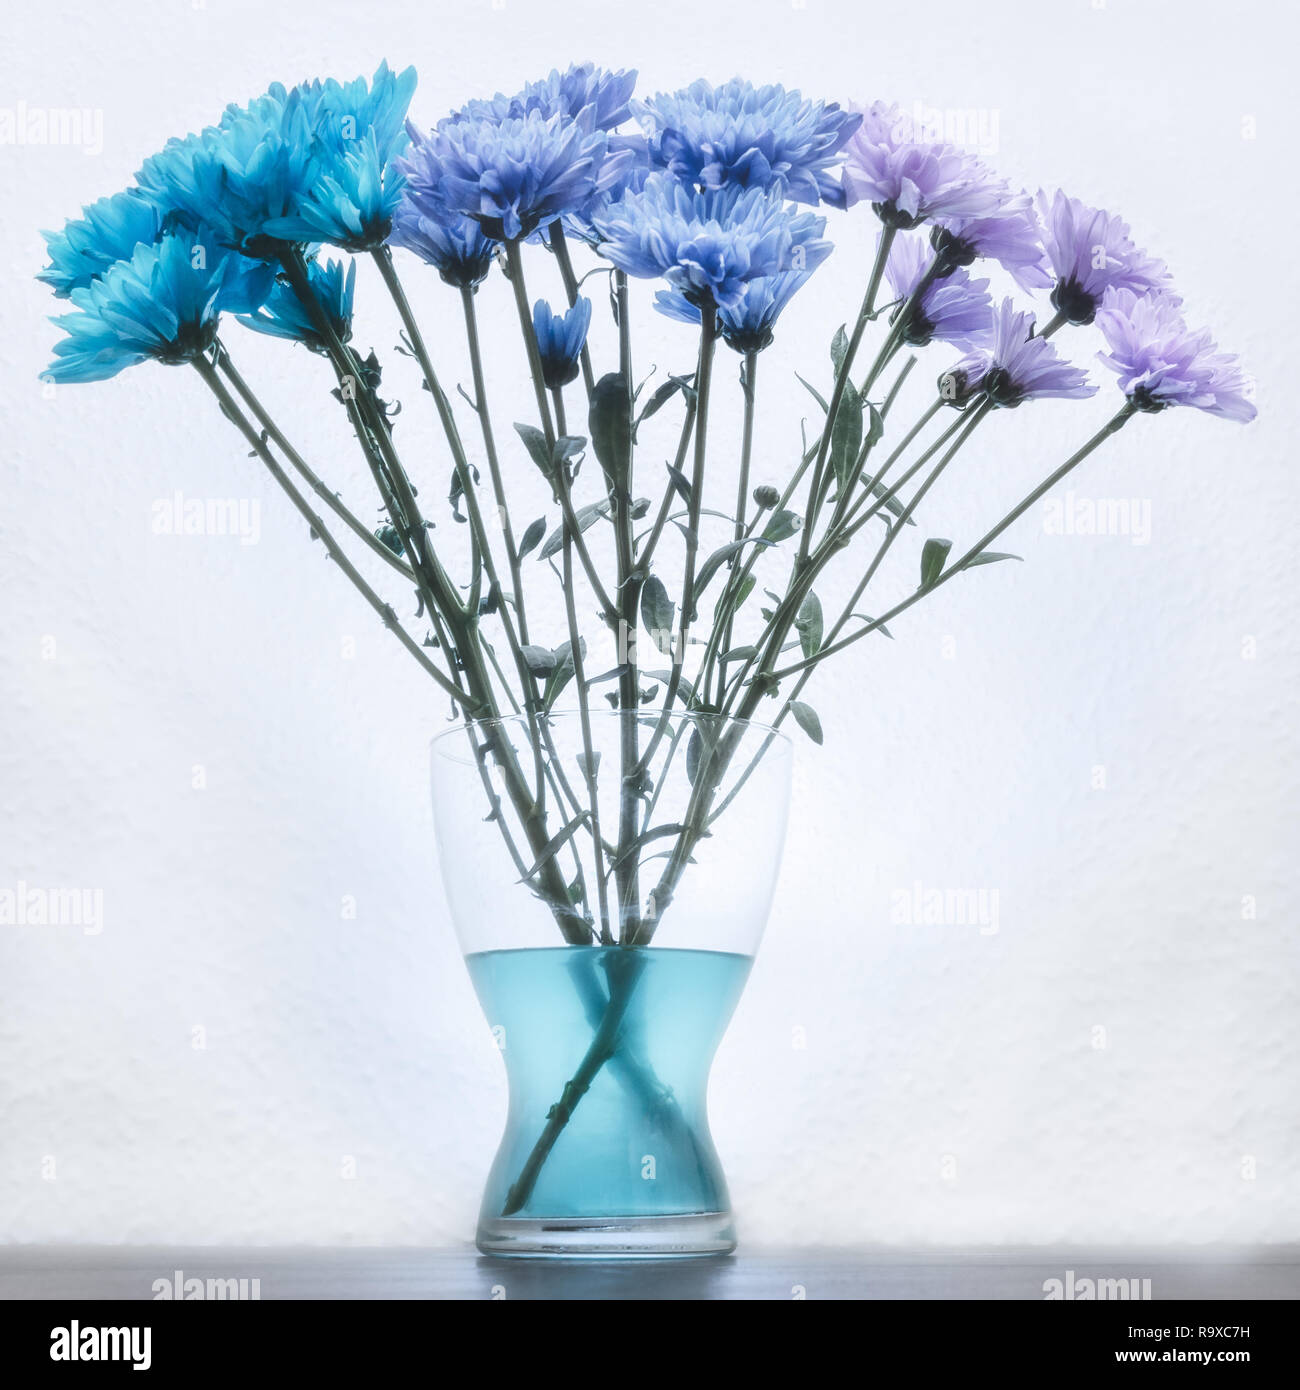 blue and purple dyed carnation flowers in a glass vase Stock Photo